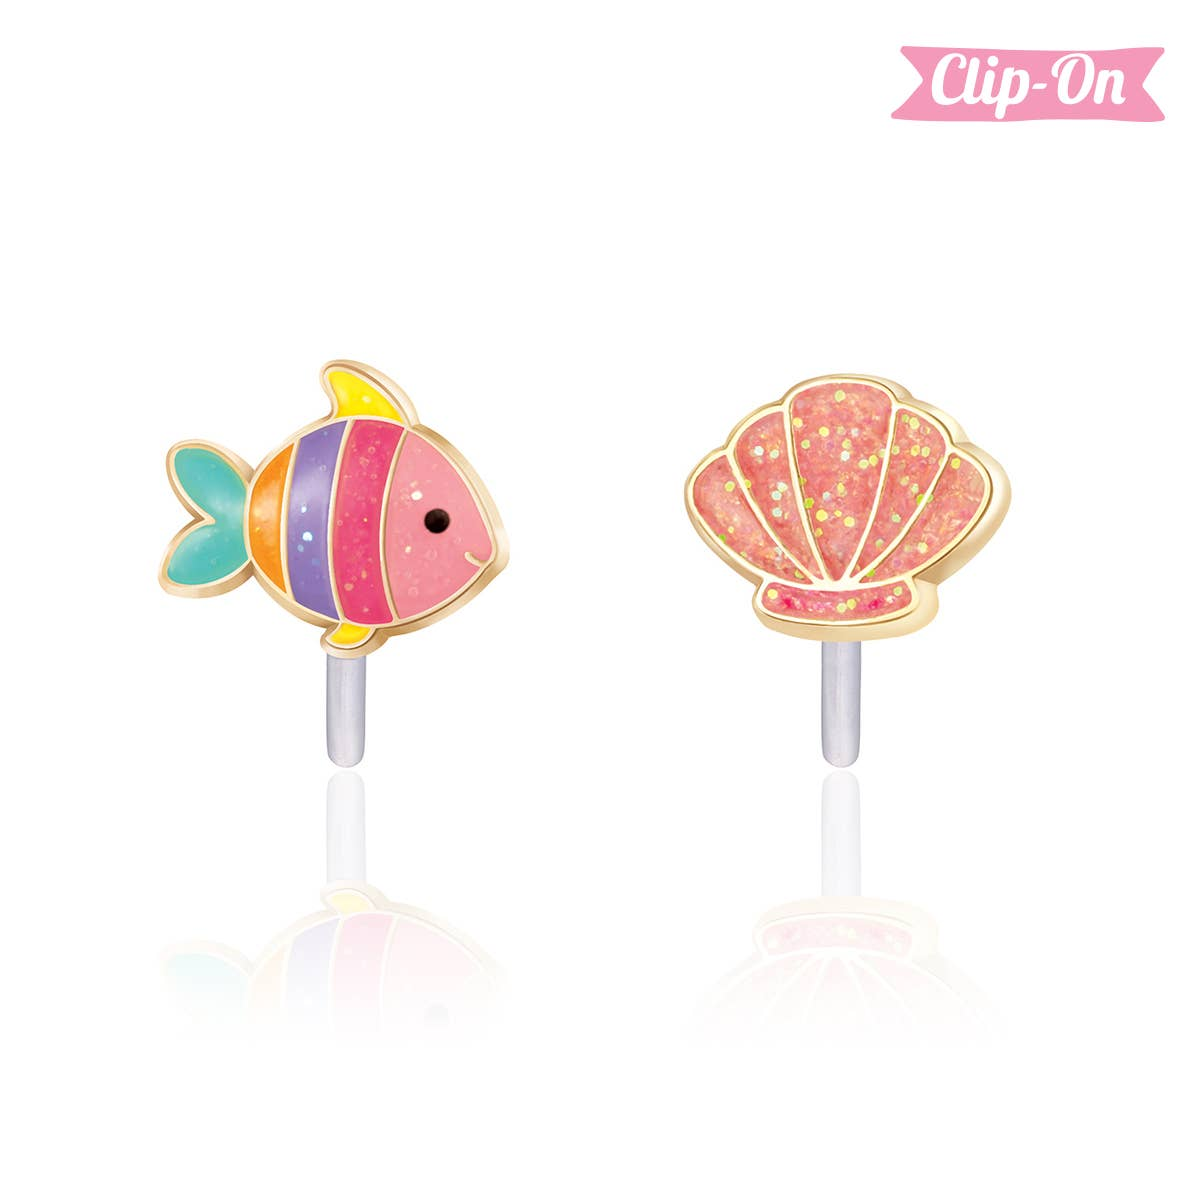 """""""The Perfect Pair""""- Under the Sea Clip-On Earrings   Trada Marketplace"""